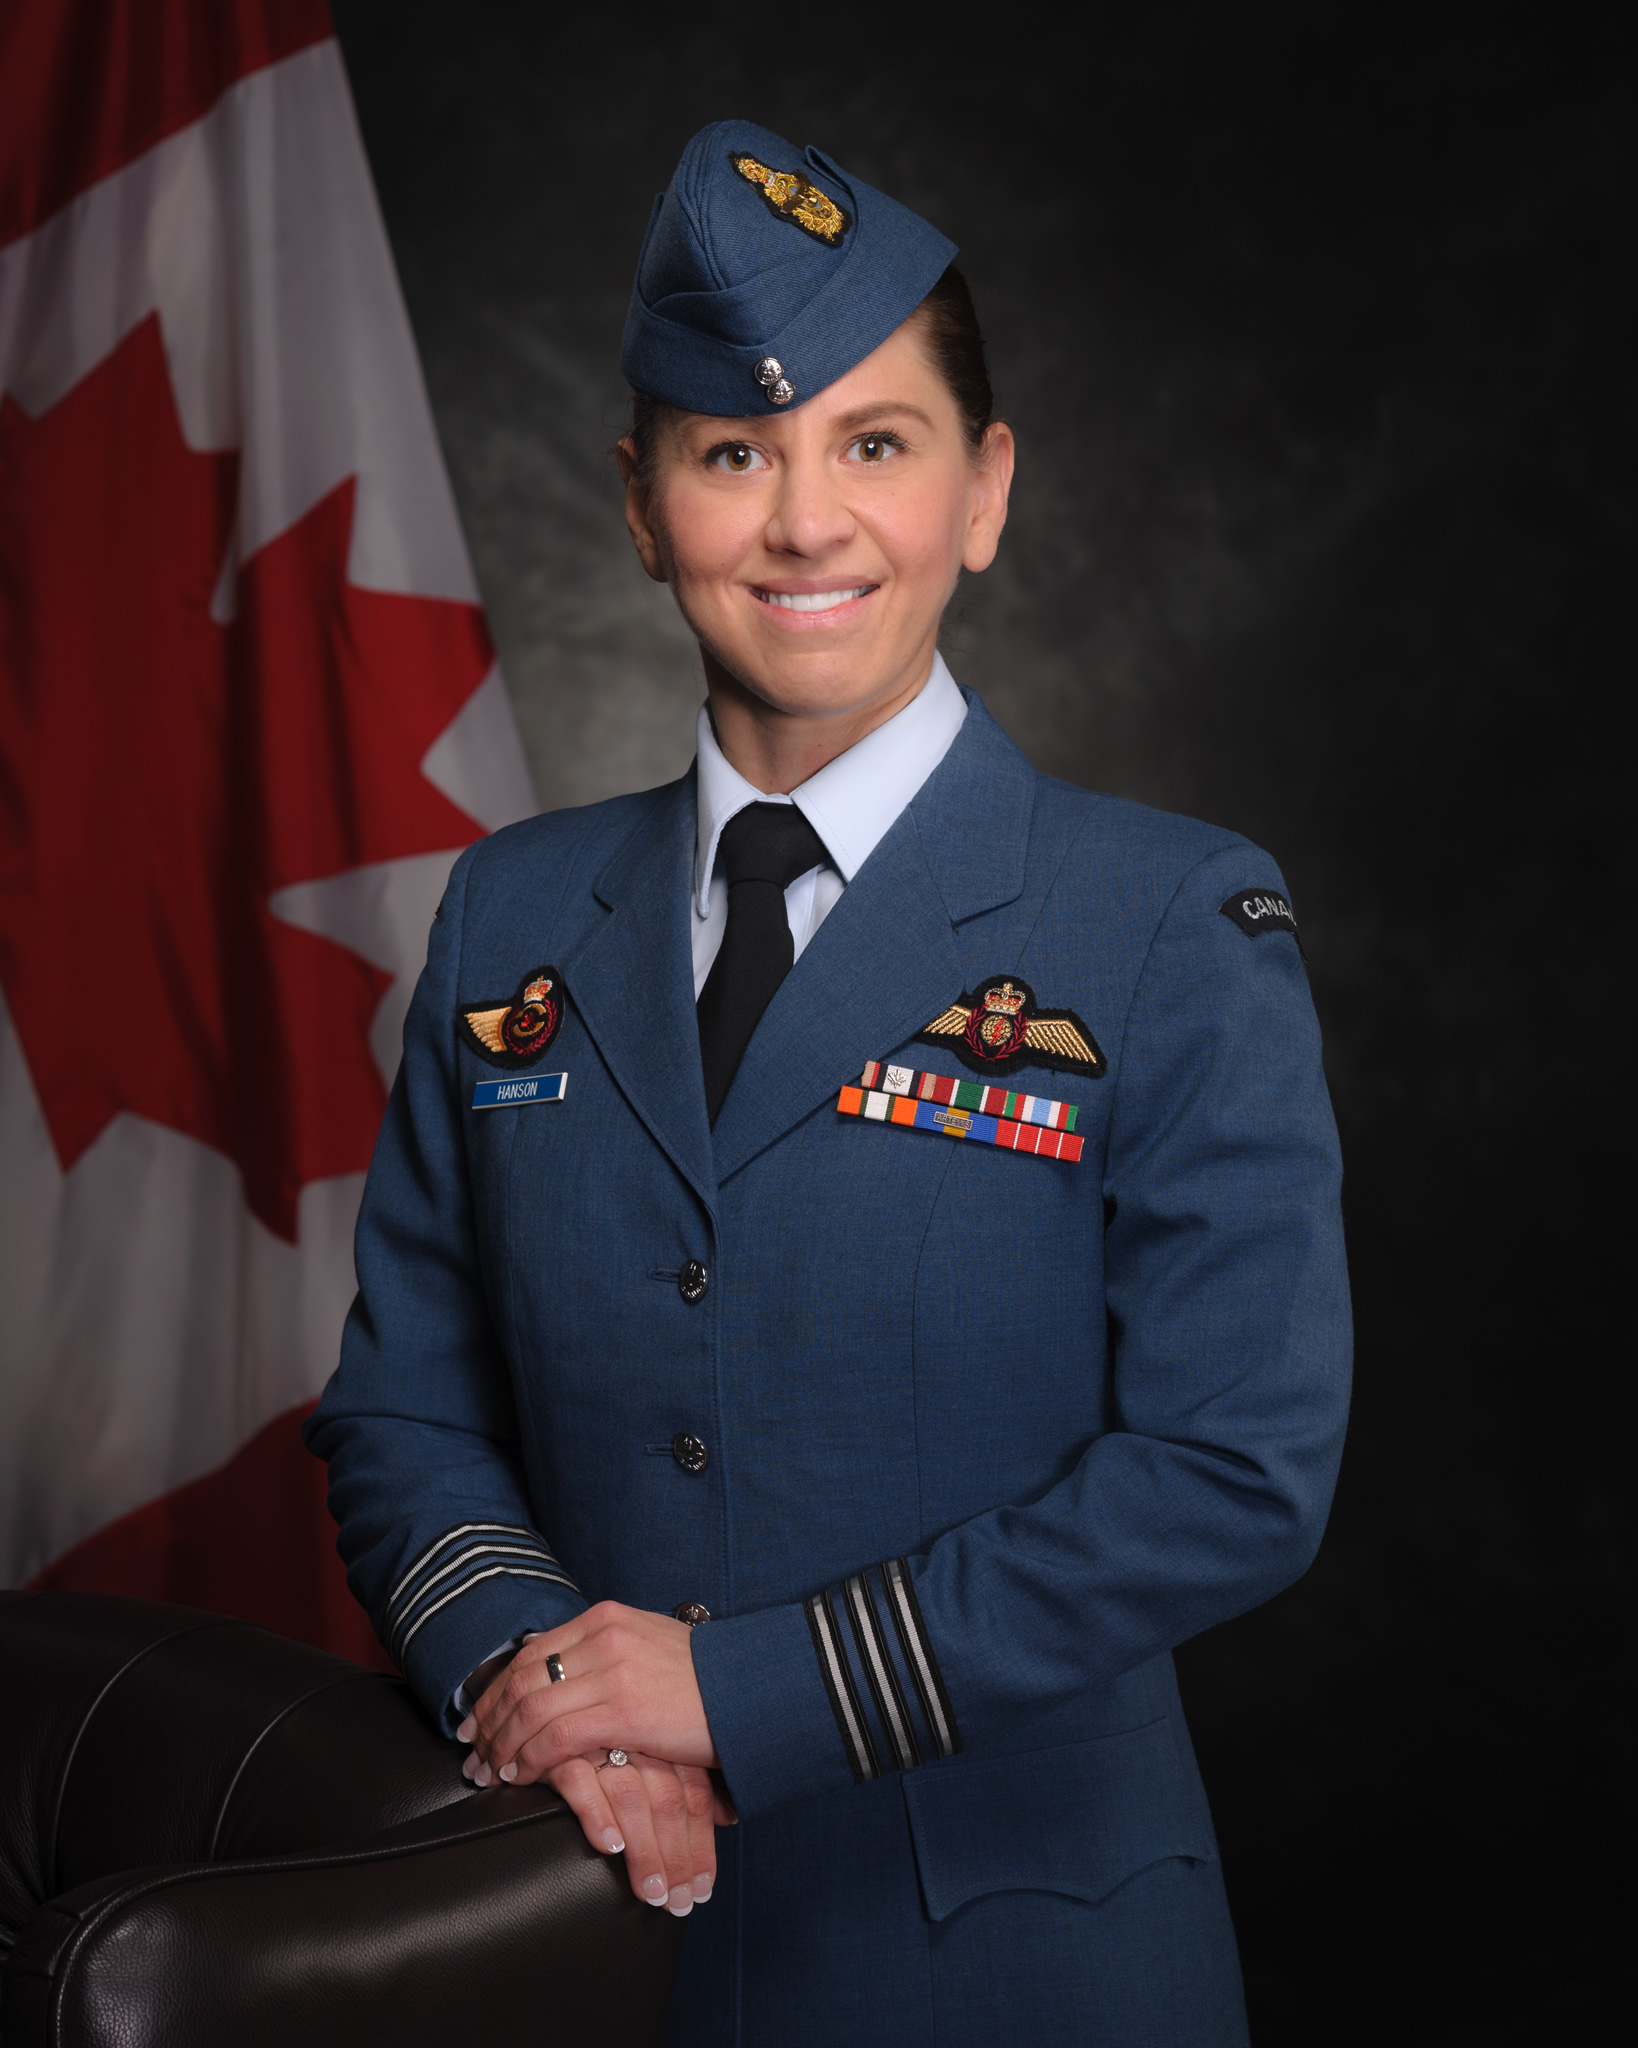 A woman in a blue military uniform smiles and stands in a formal pose